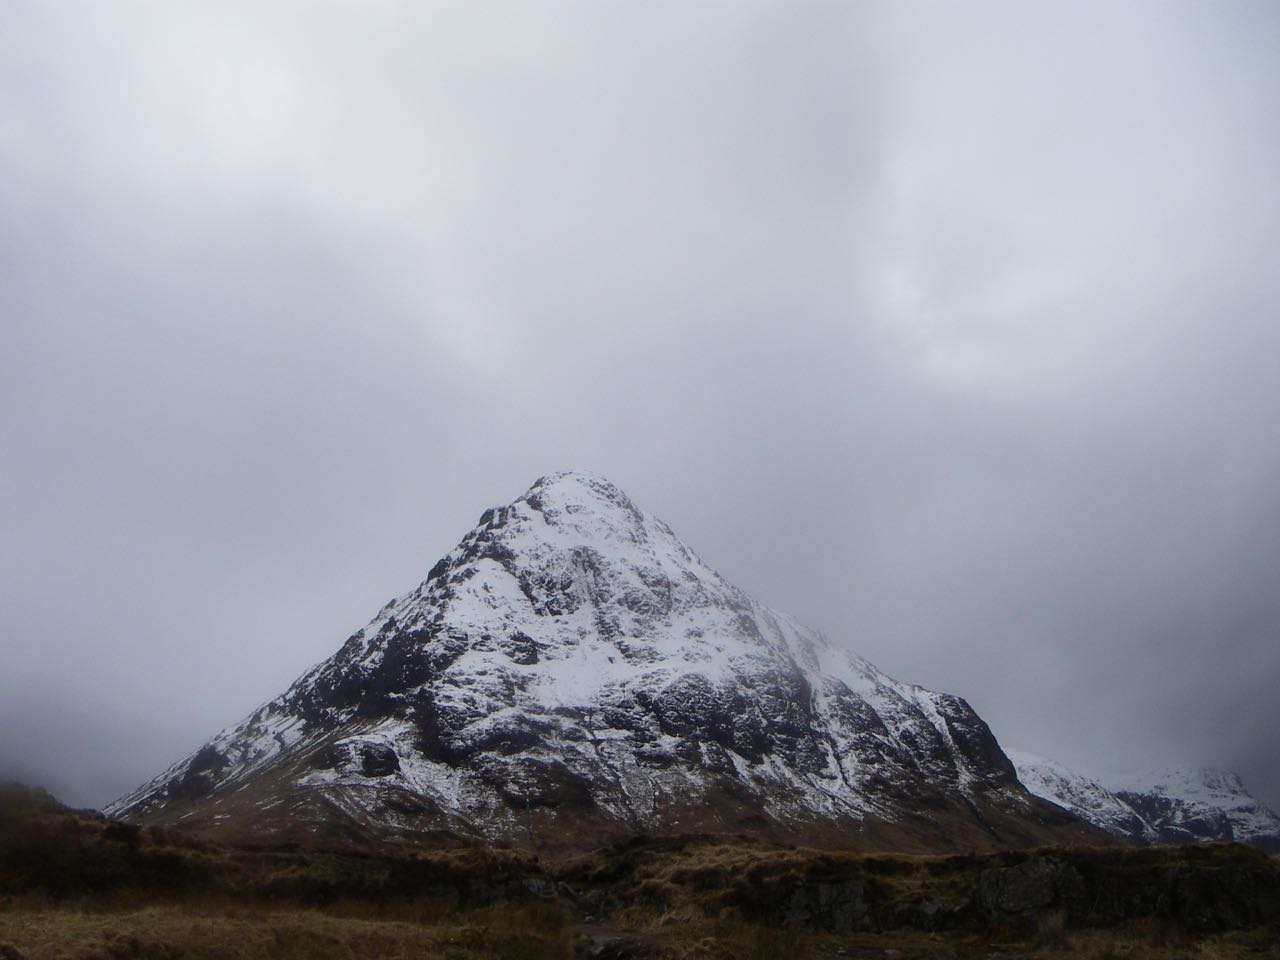 Stob nan Cabar, the 'Wee Buachaille' often overshadowed by its bigger neighbour